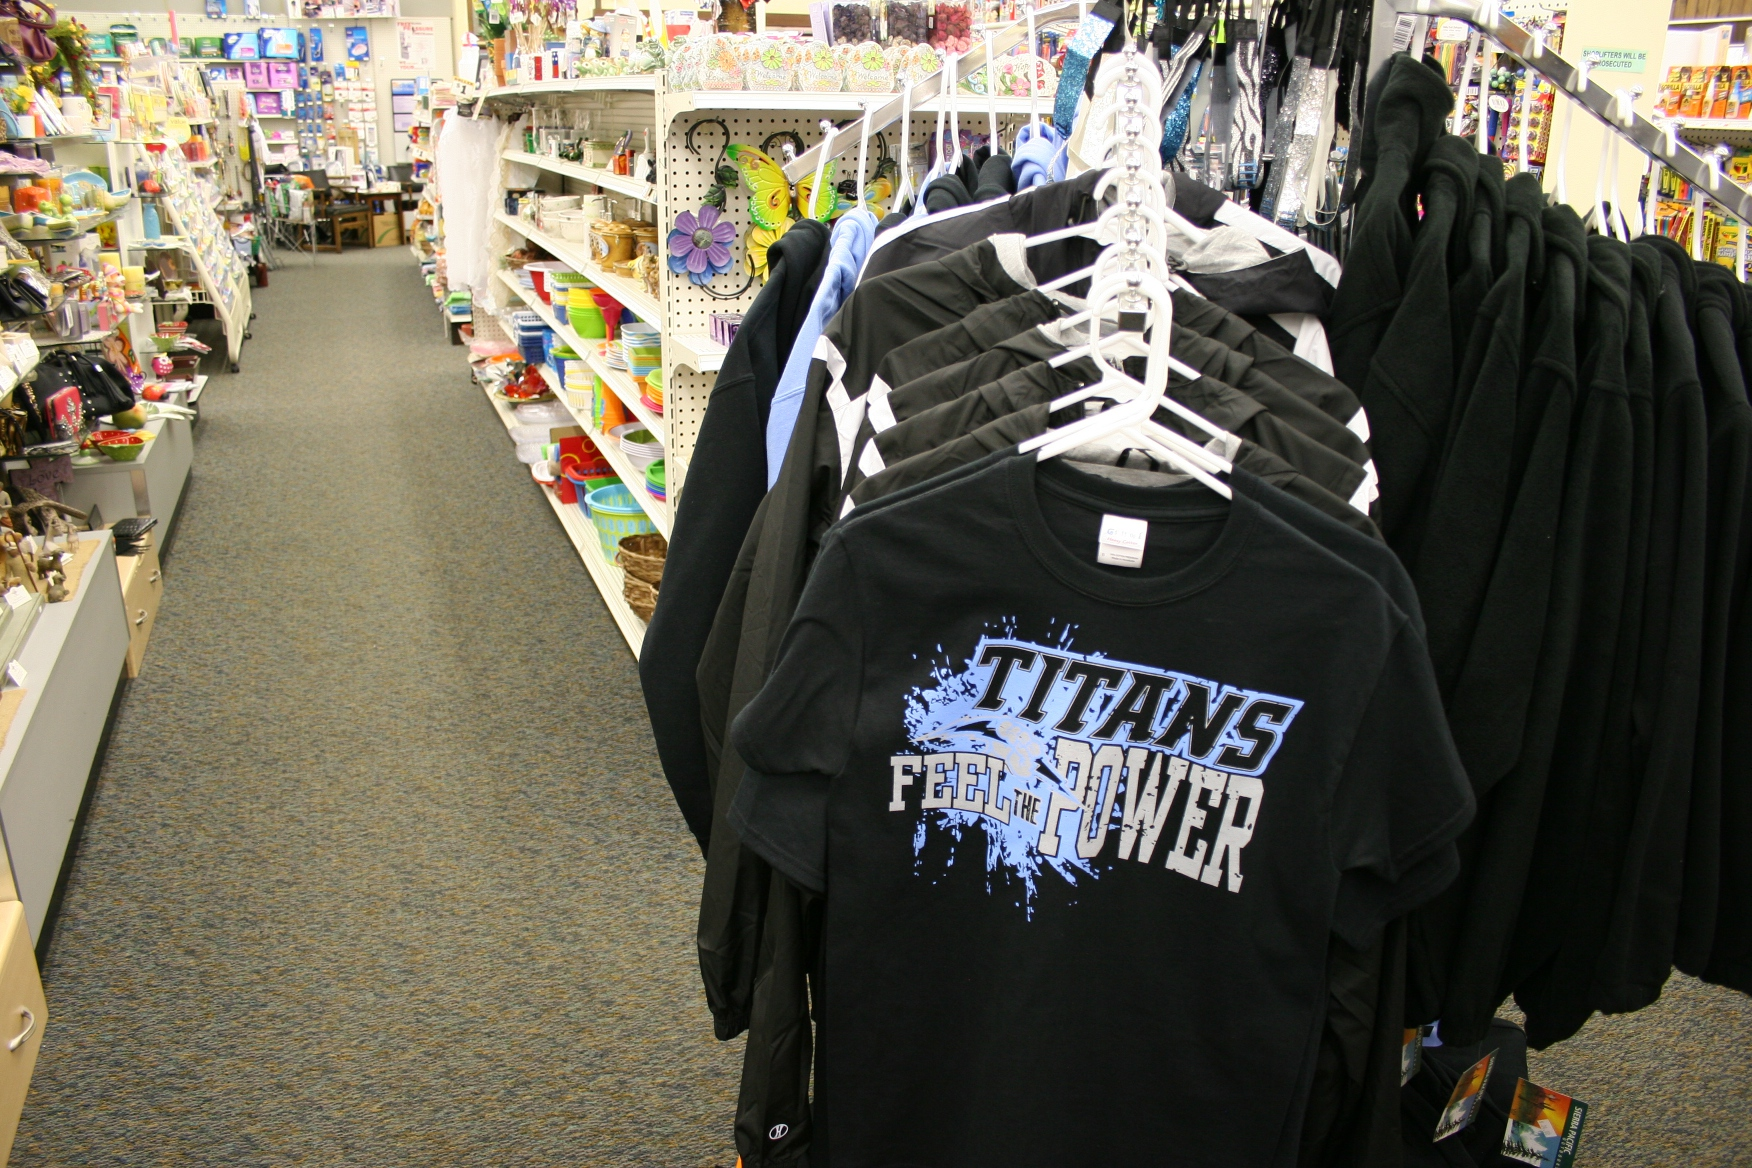 The drugstore sells Titans apparel for the local school.